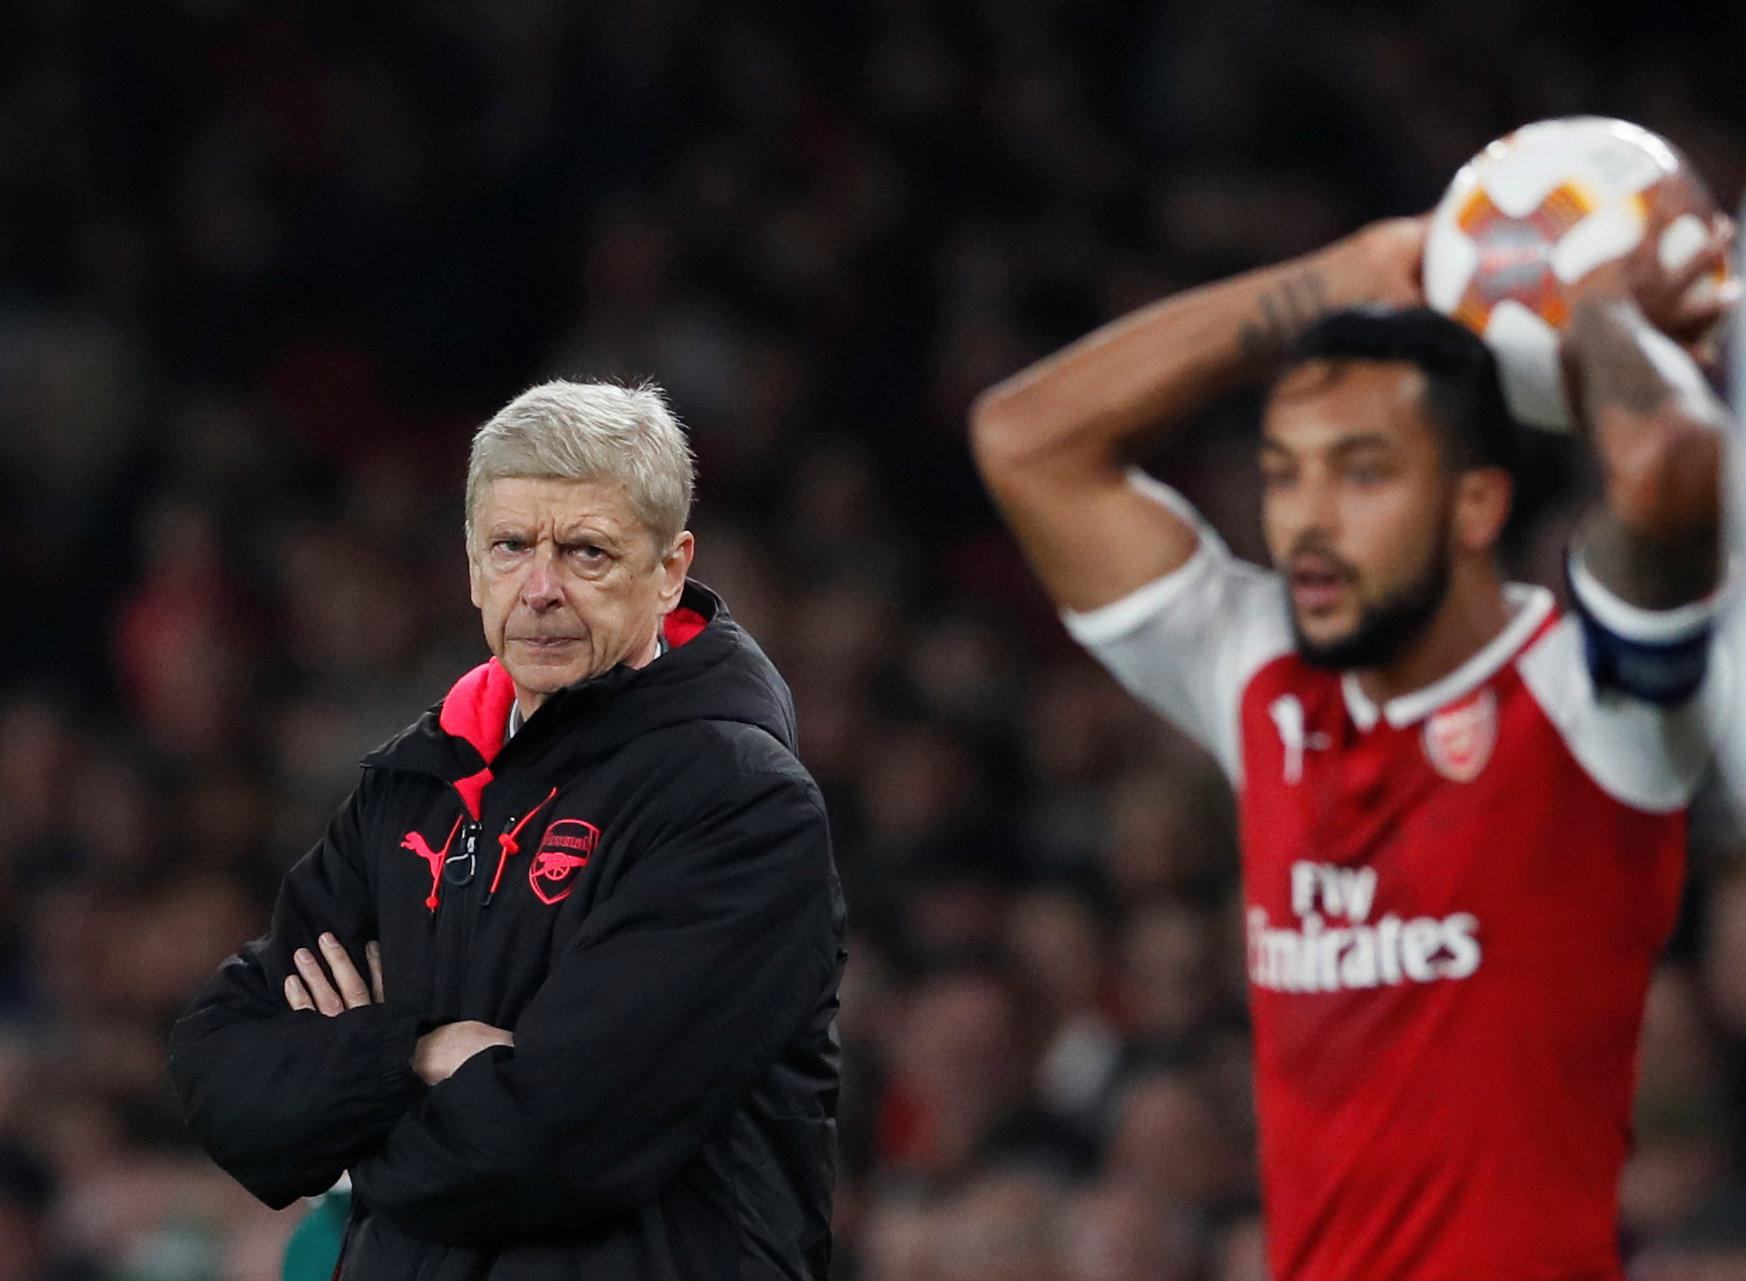 Wenger knows Walcott's game better than anyone